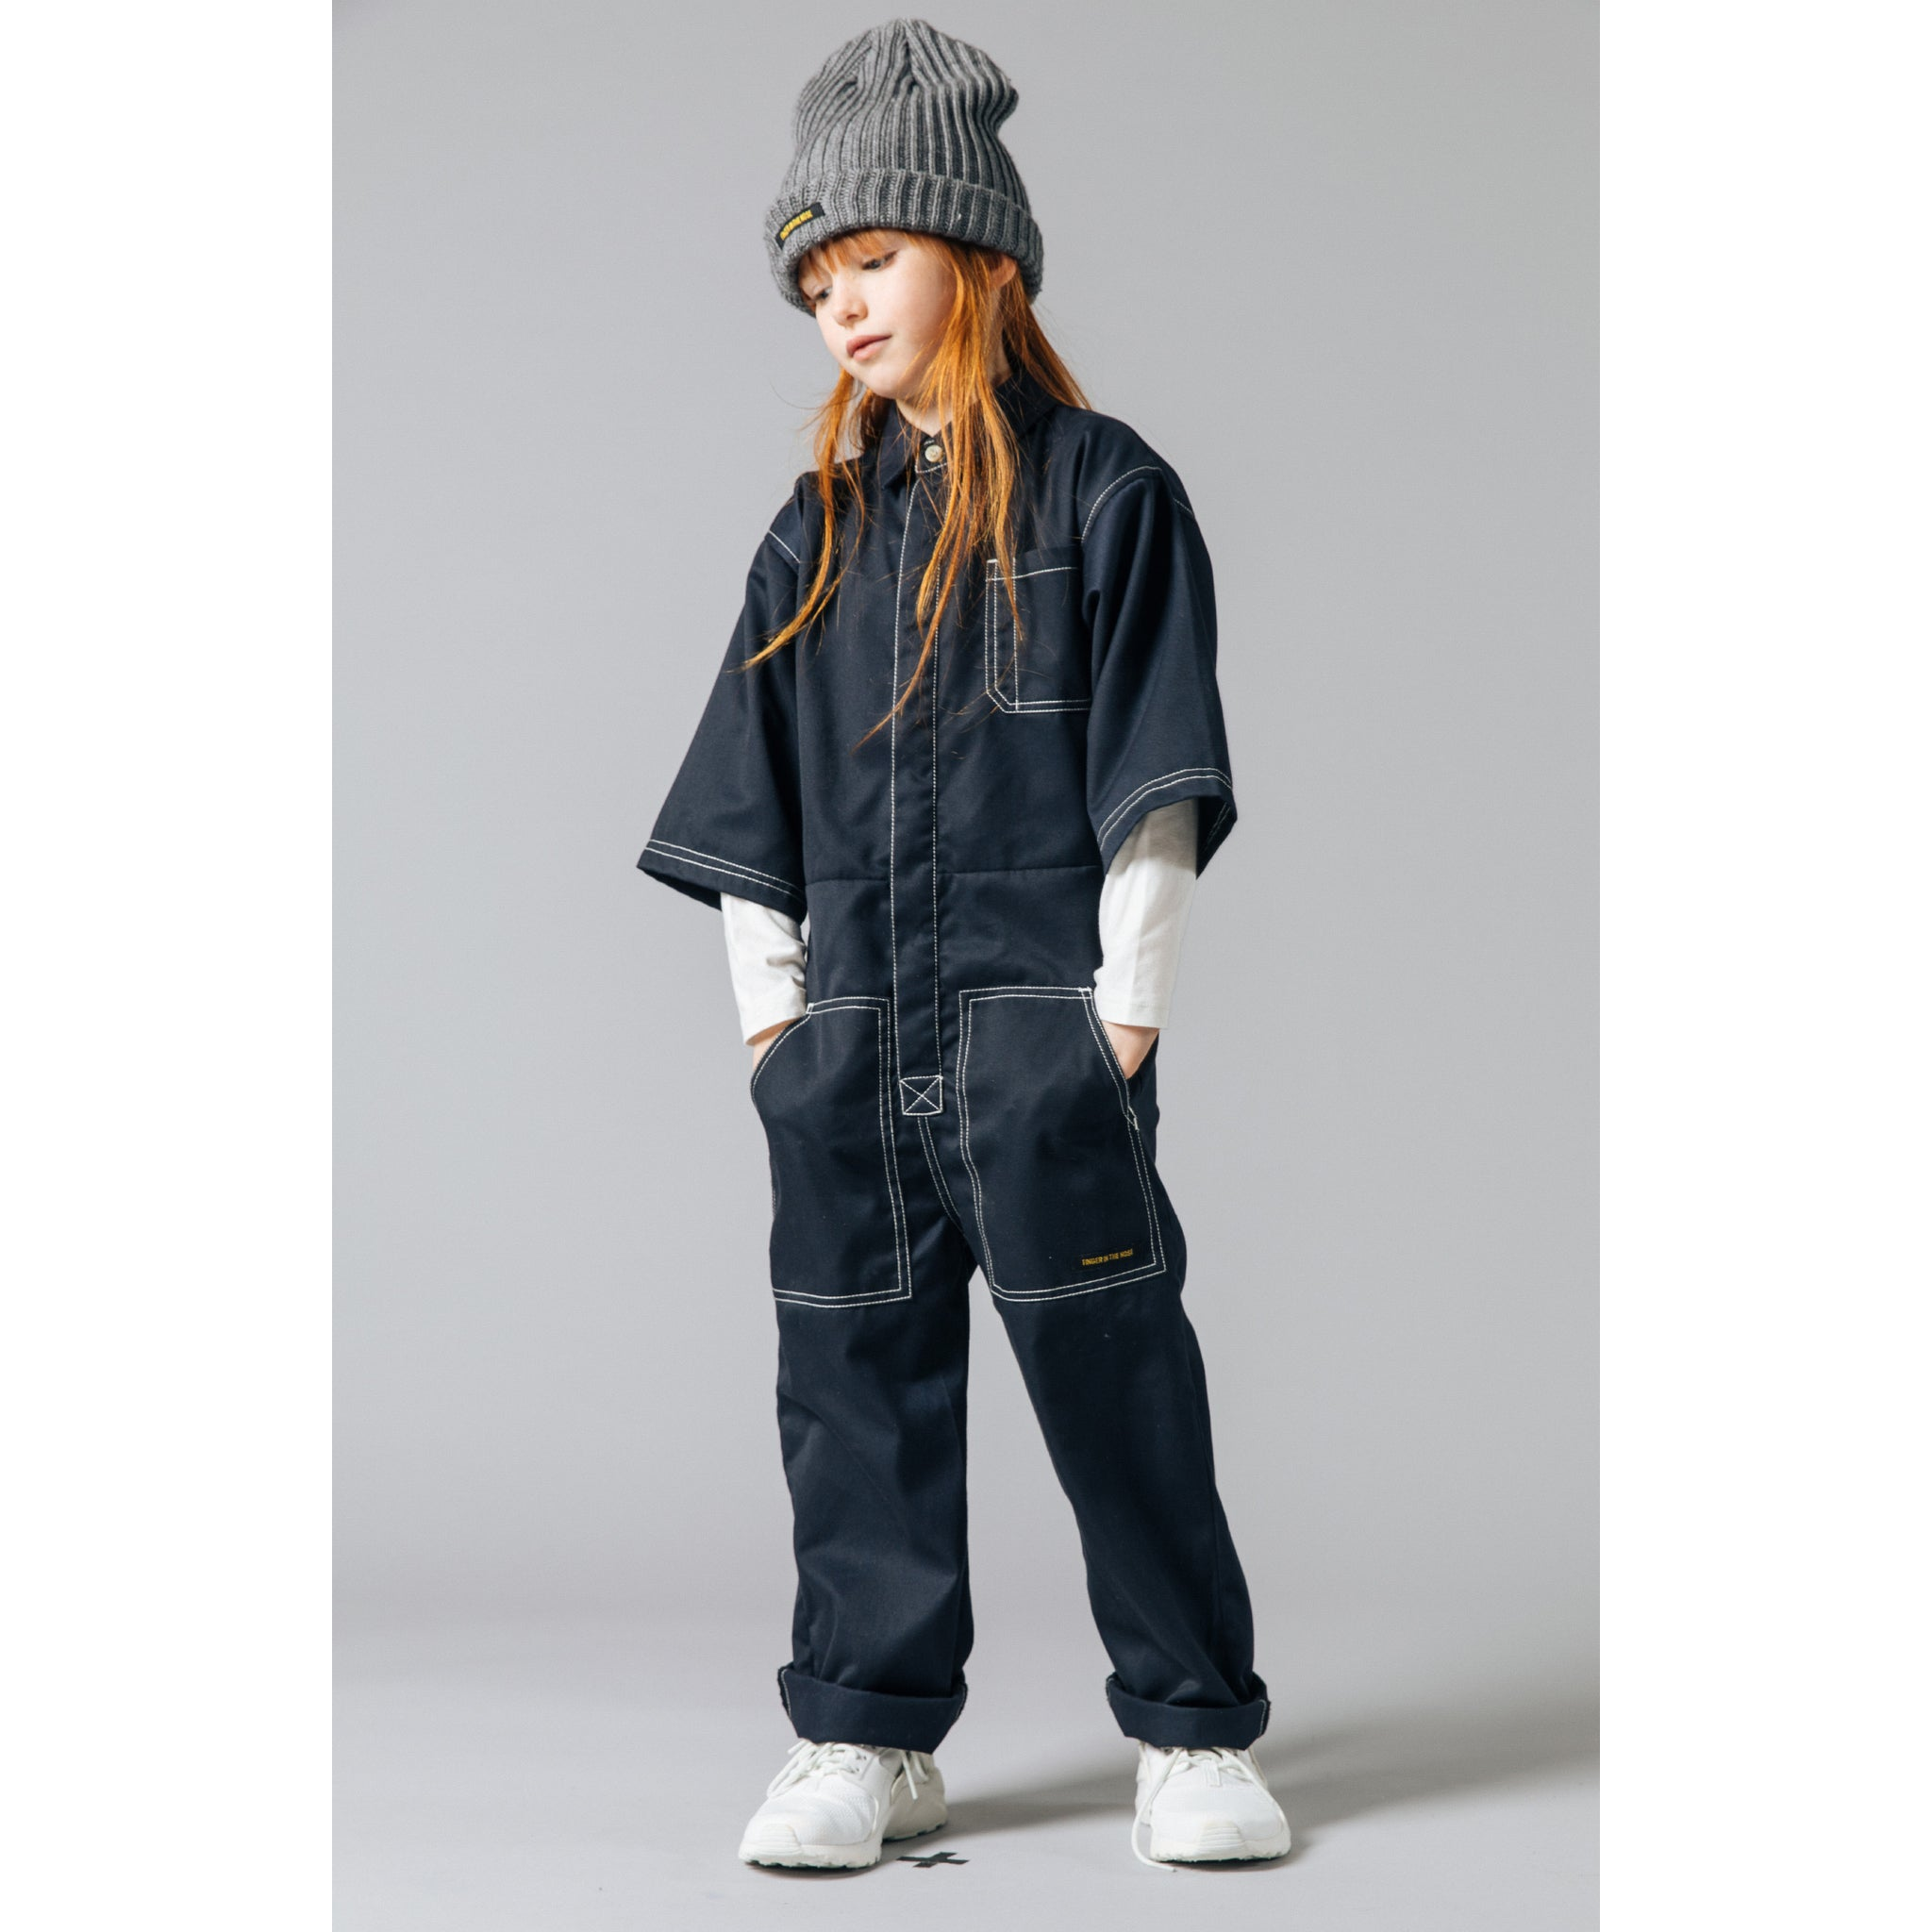 PENCIL Night Blue -  Woven Oversized Overall 2